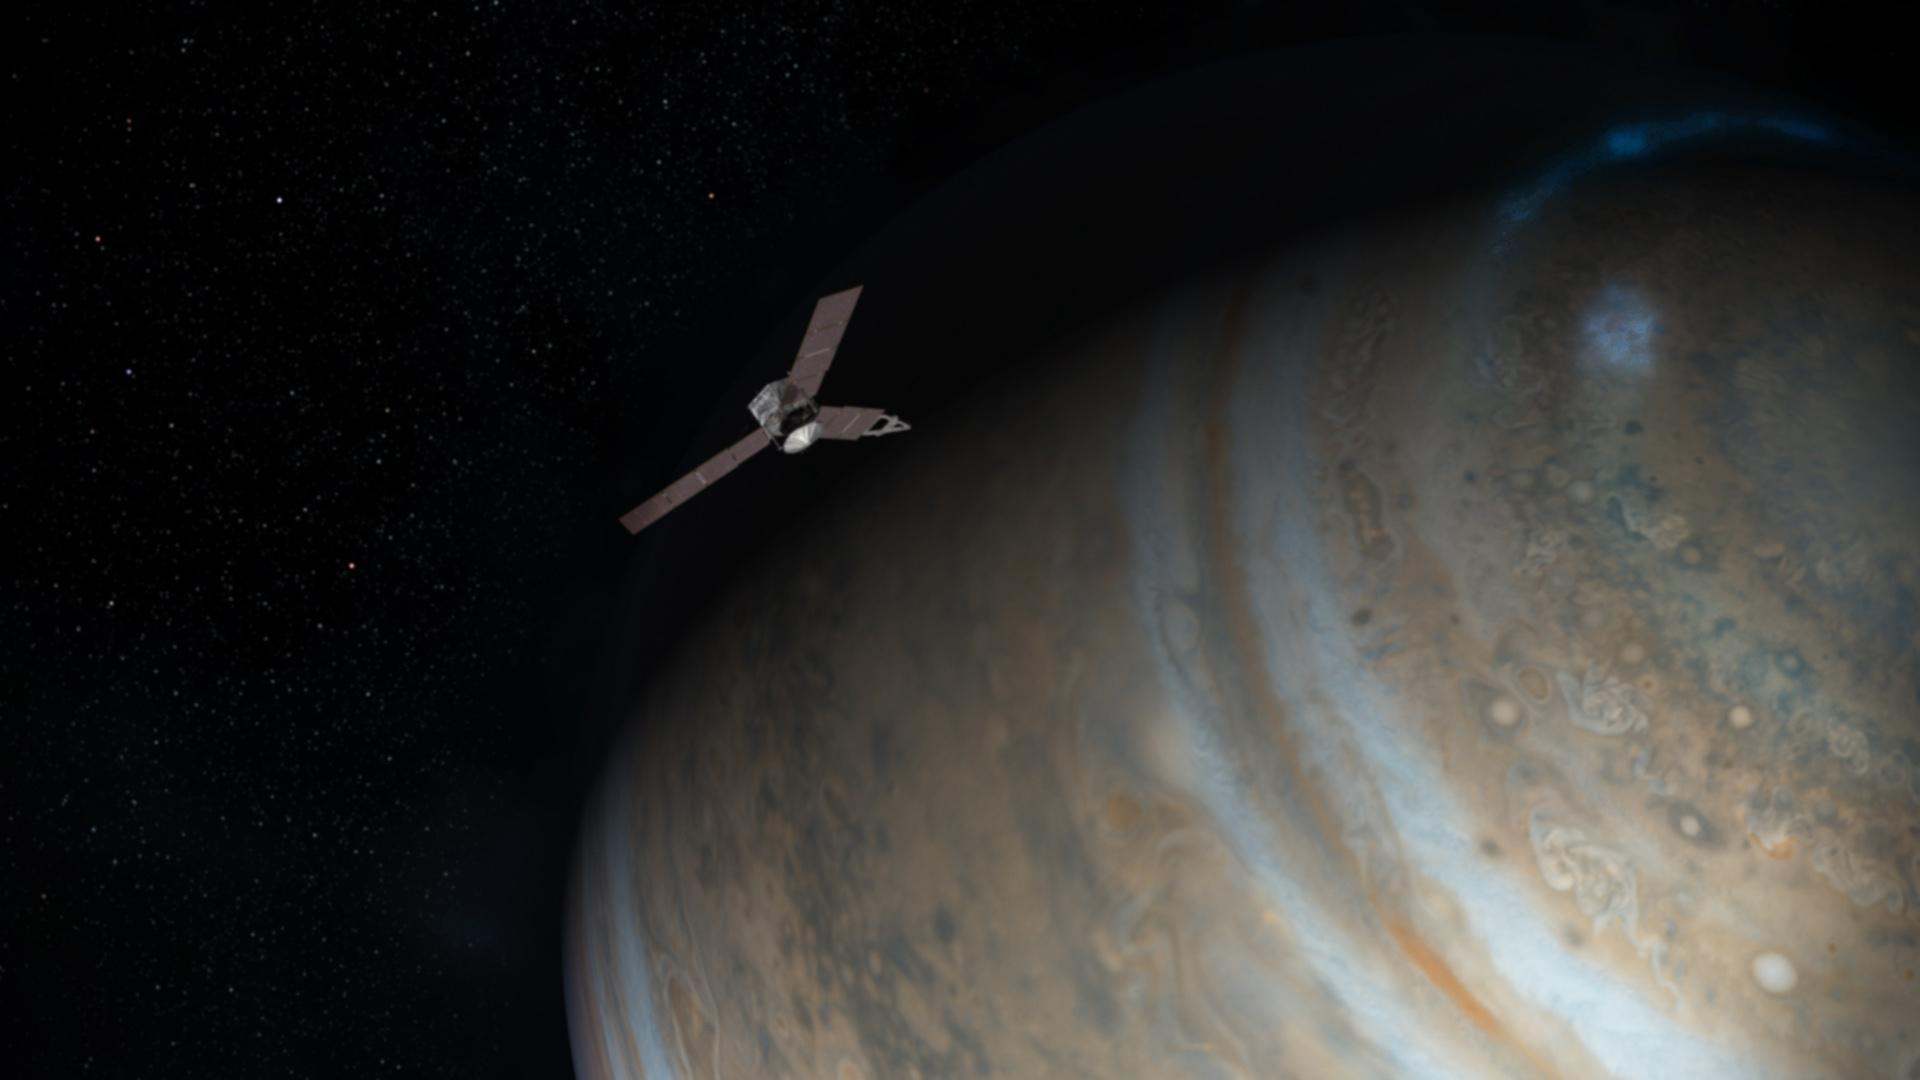 NASA's Juno spacecraft, spinning once every 12 seconds for stability, fired its main engine for more than 35 minutes Monday to brake into orbit around Jupiter. Credit: NASA/JPL-Caltech